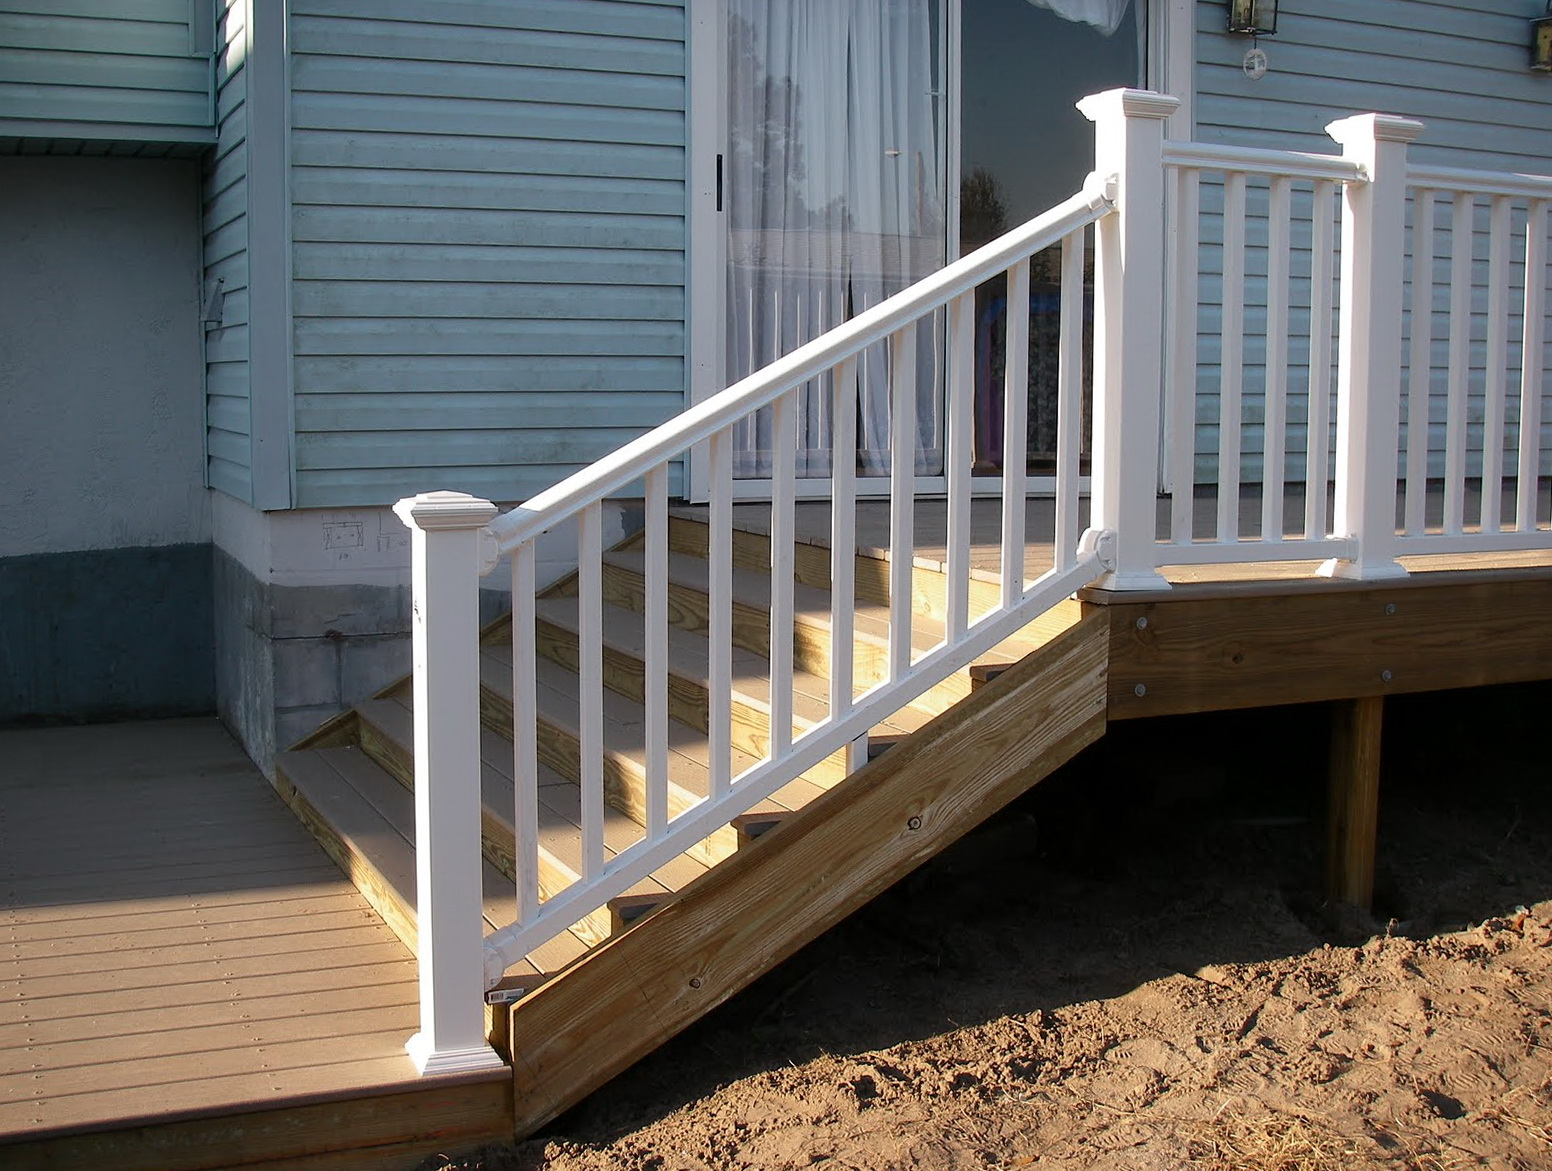 on combinations home house aluminum cedar ideas for wall build led round best modern wood wrap gallery virginia pinterest how front back window with only columns bungalow and pillars lighting porches vinyl depot to paint porch exterior color posts